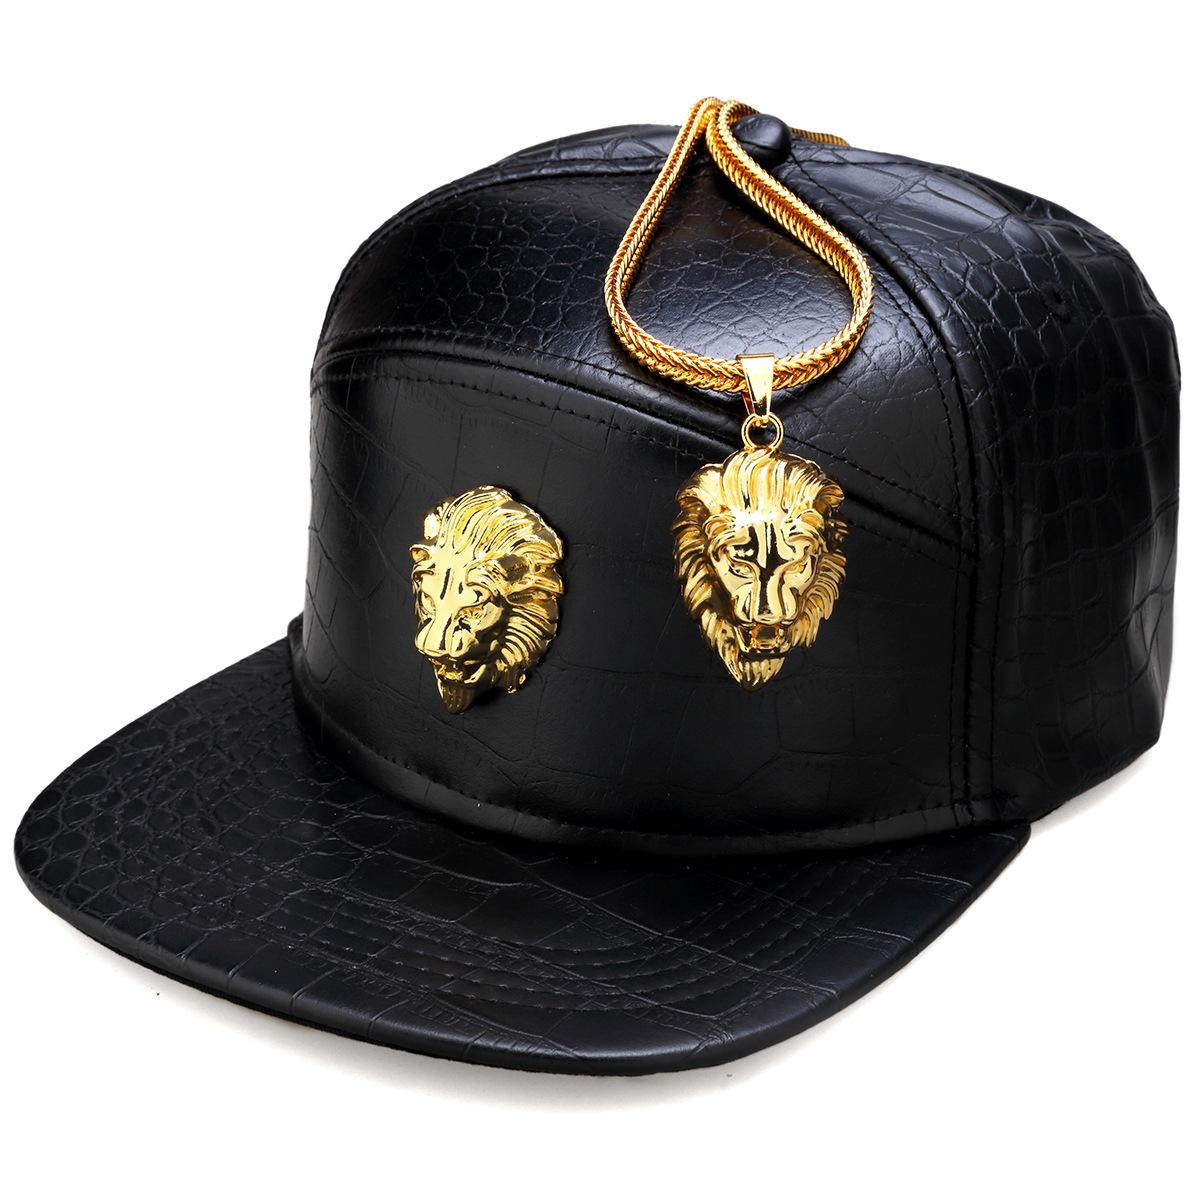 e687ead2dae0f Wholesale High Quality Fashion Snapback PU Hats Lion Head Men Women Hip Hop  Full Cap Skateboard Baseball Rock Rapper Music Men Bone Caps Hats Fitted Cap  ...